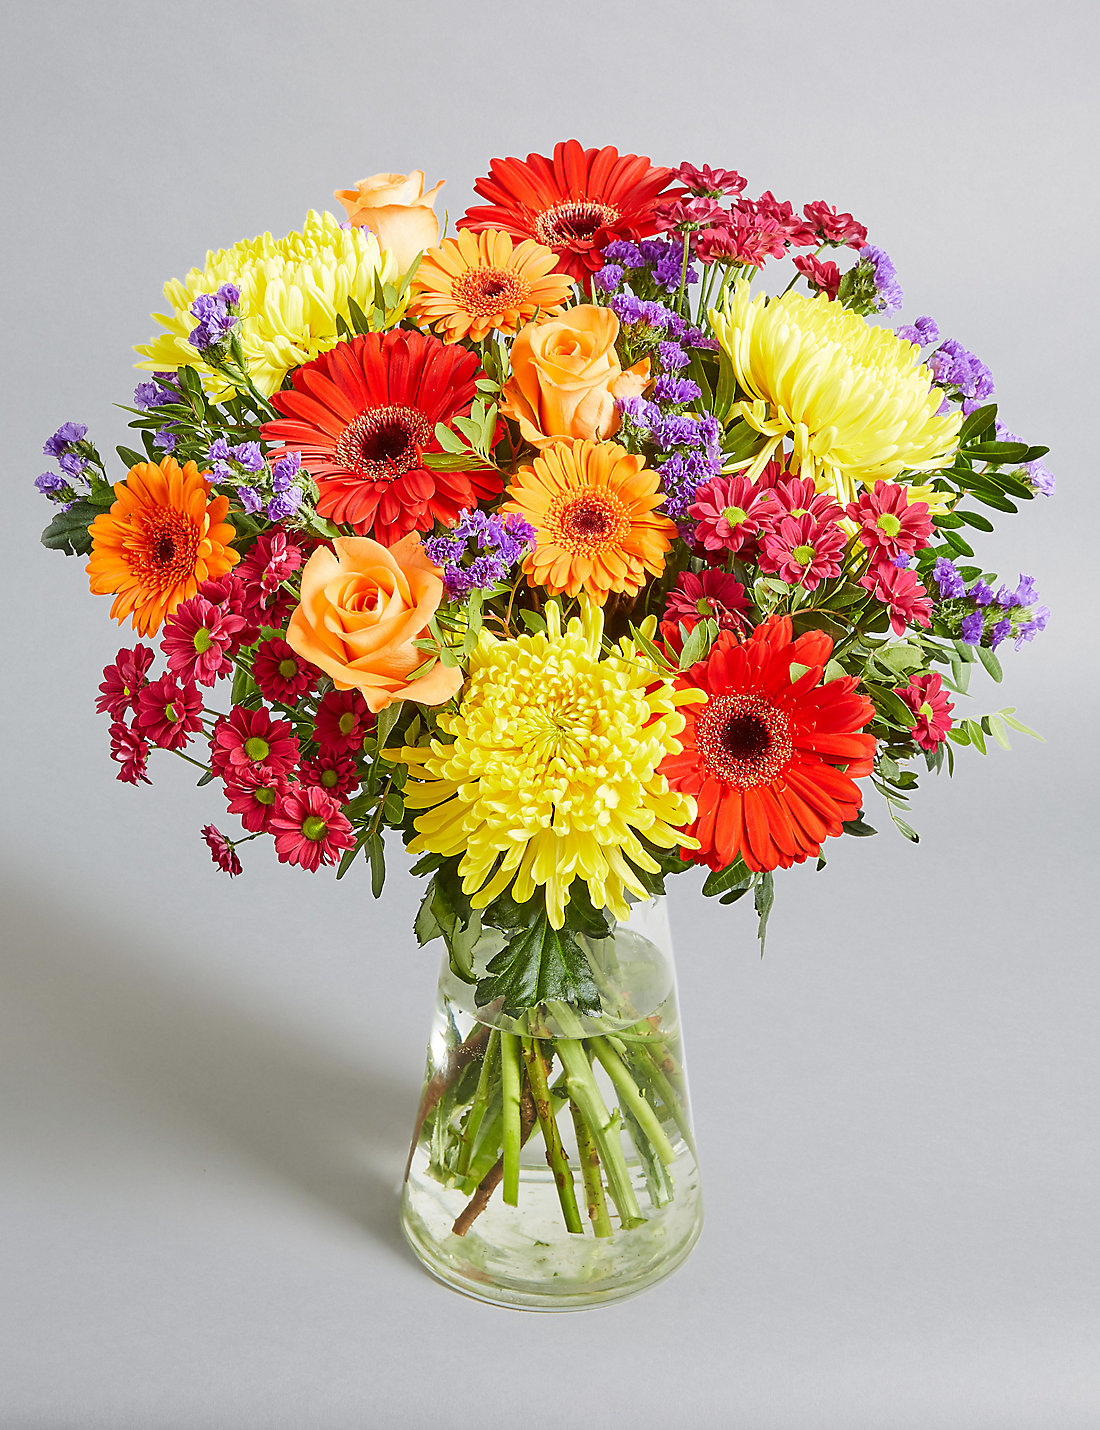 pictures of spring flower bouquets the best flowers ideas colorful, Beautiful flower